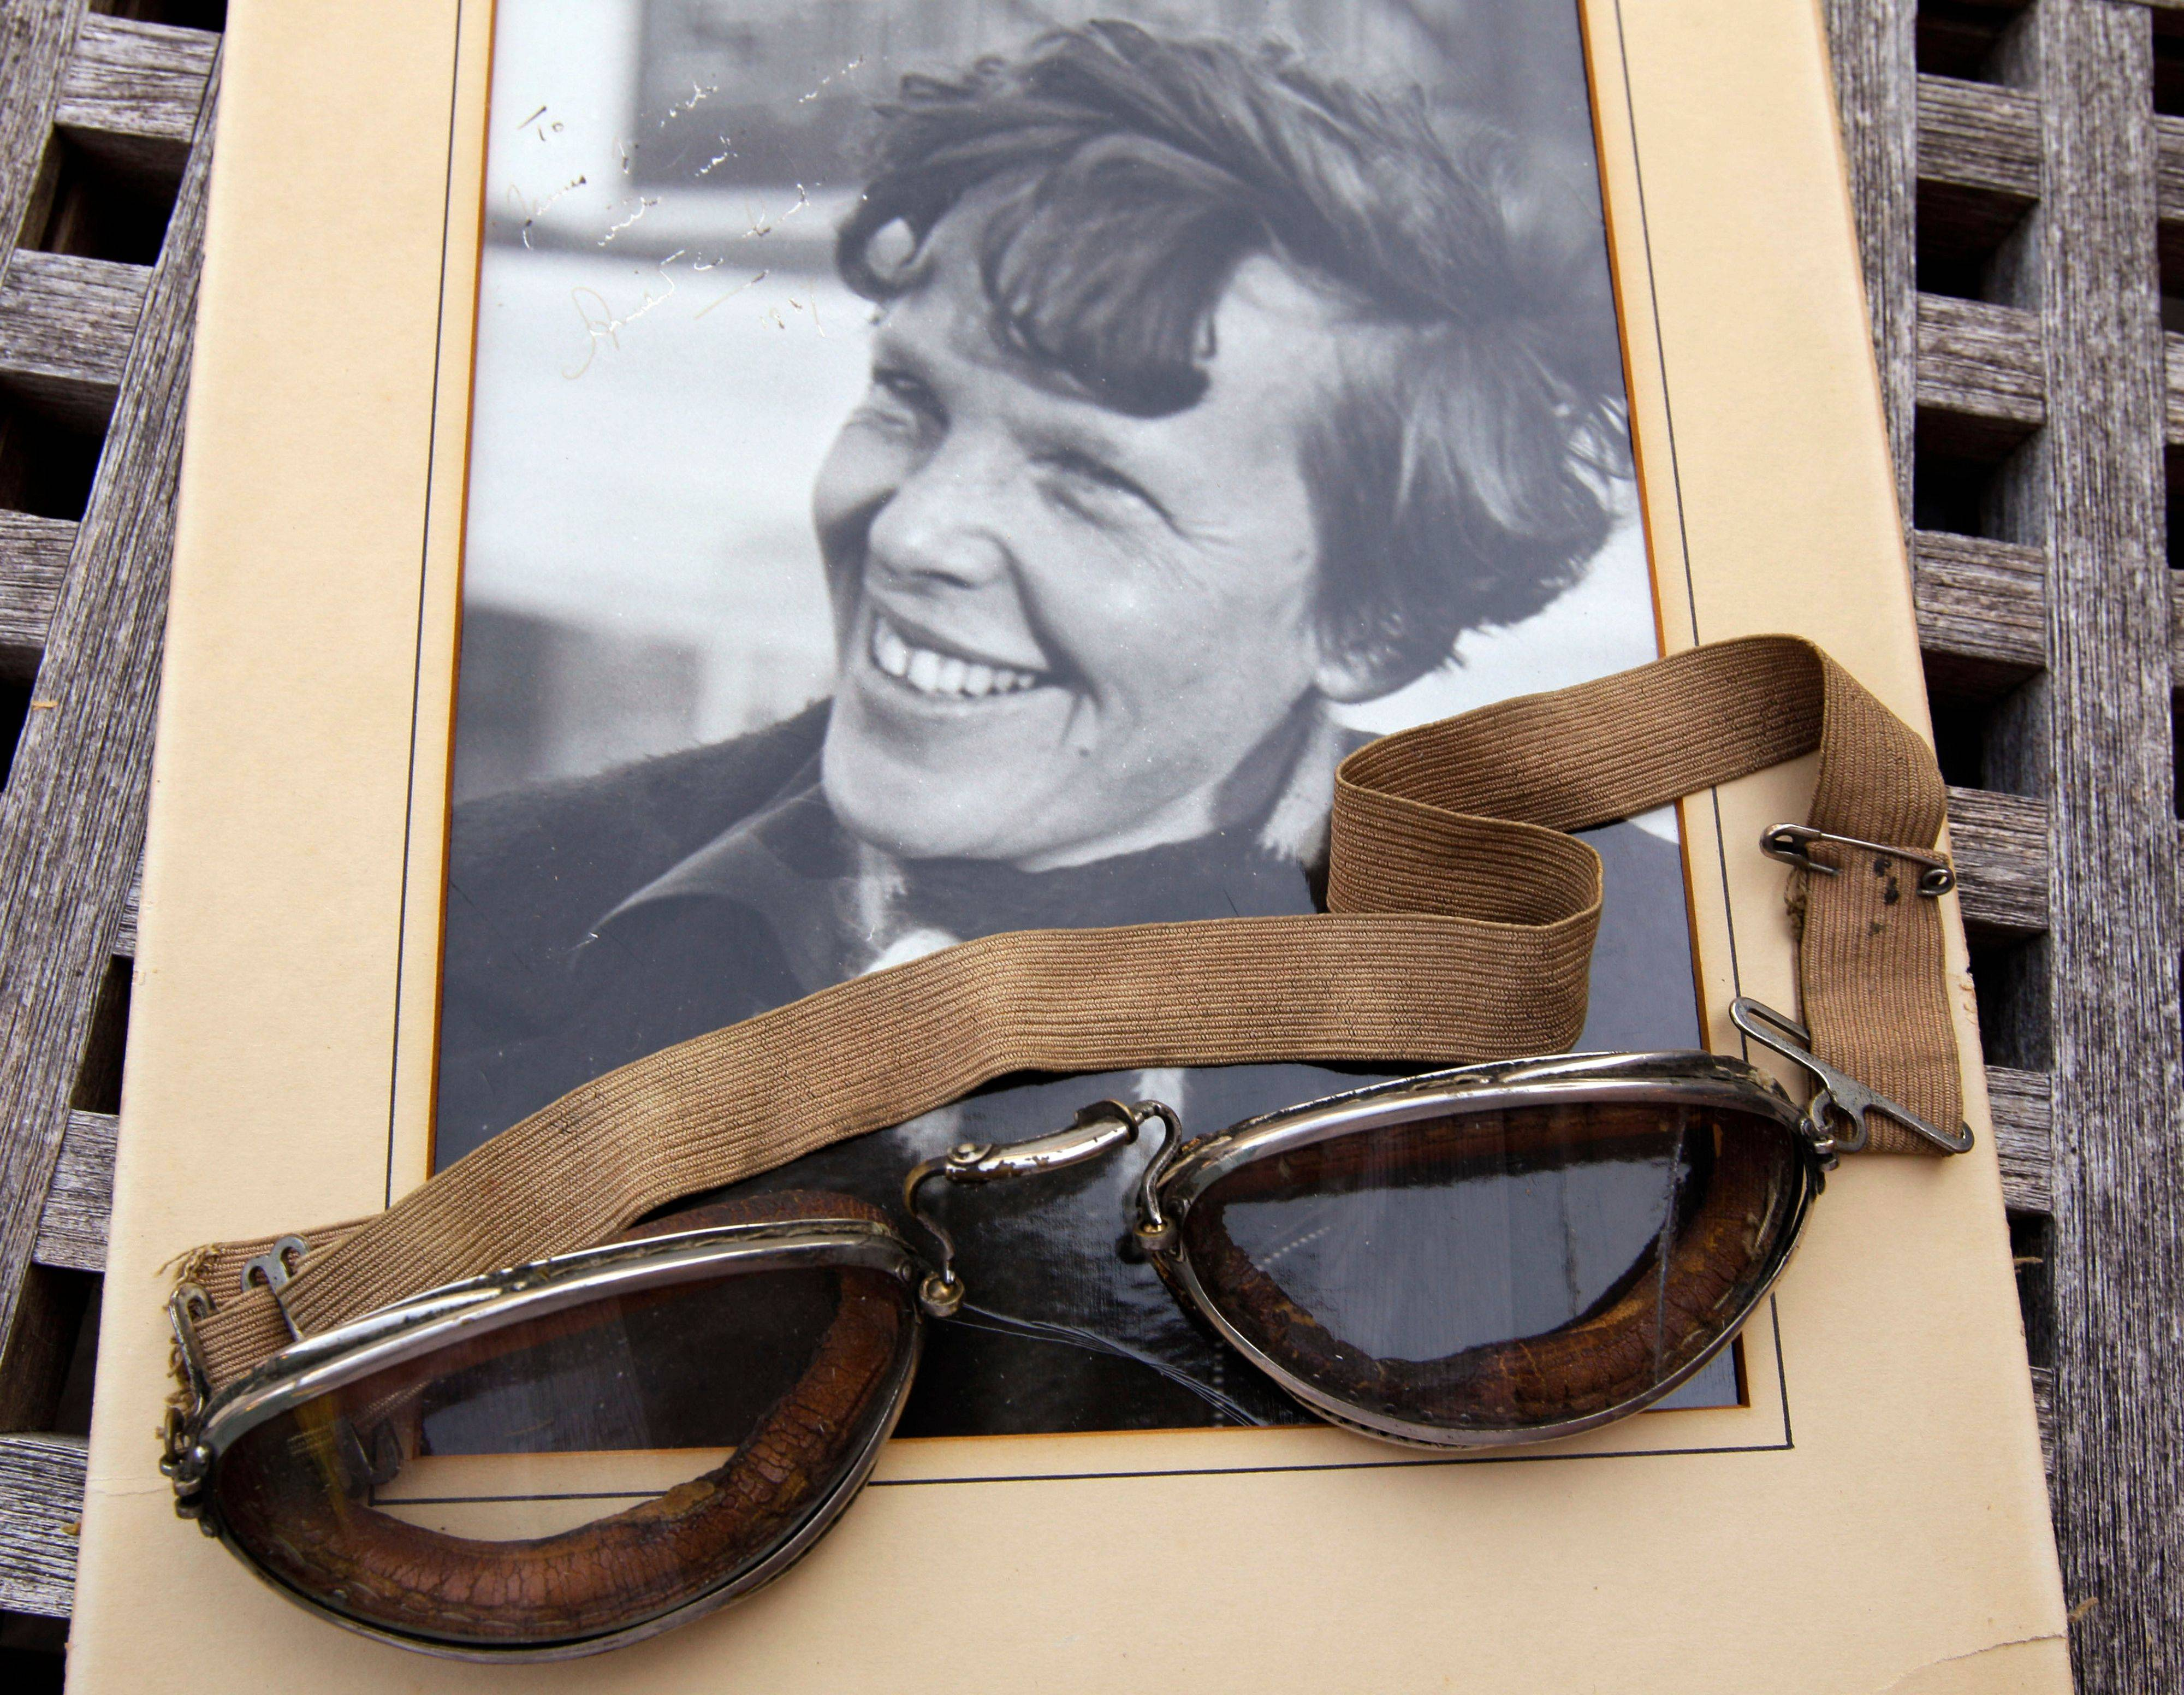 An original, unpublished personal photo of Amelia Earhart dated 1937, along with goggles she was wearing during her first plane crash, are going on the auction block at Clars Auction Gallery in Oakland, Calif.